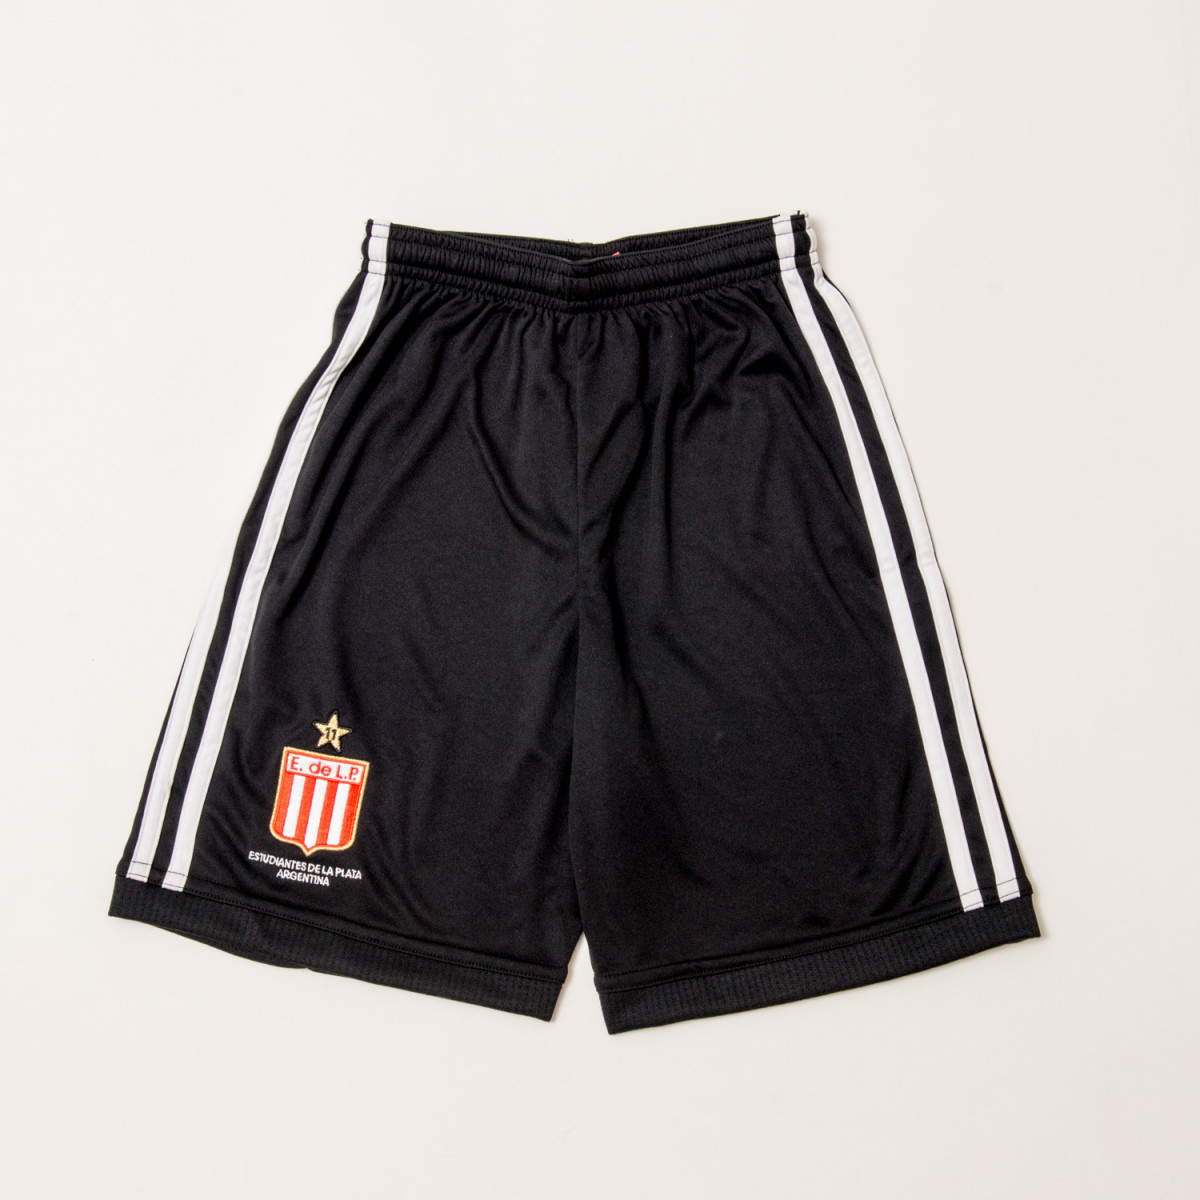 SHORT ADIDAS ESTUDIANTES LP LOCAL JUVENIL